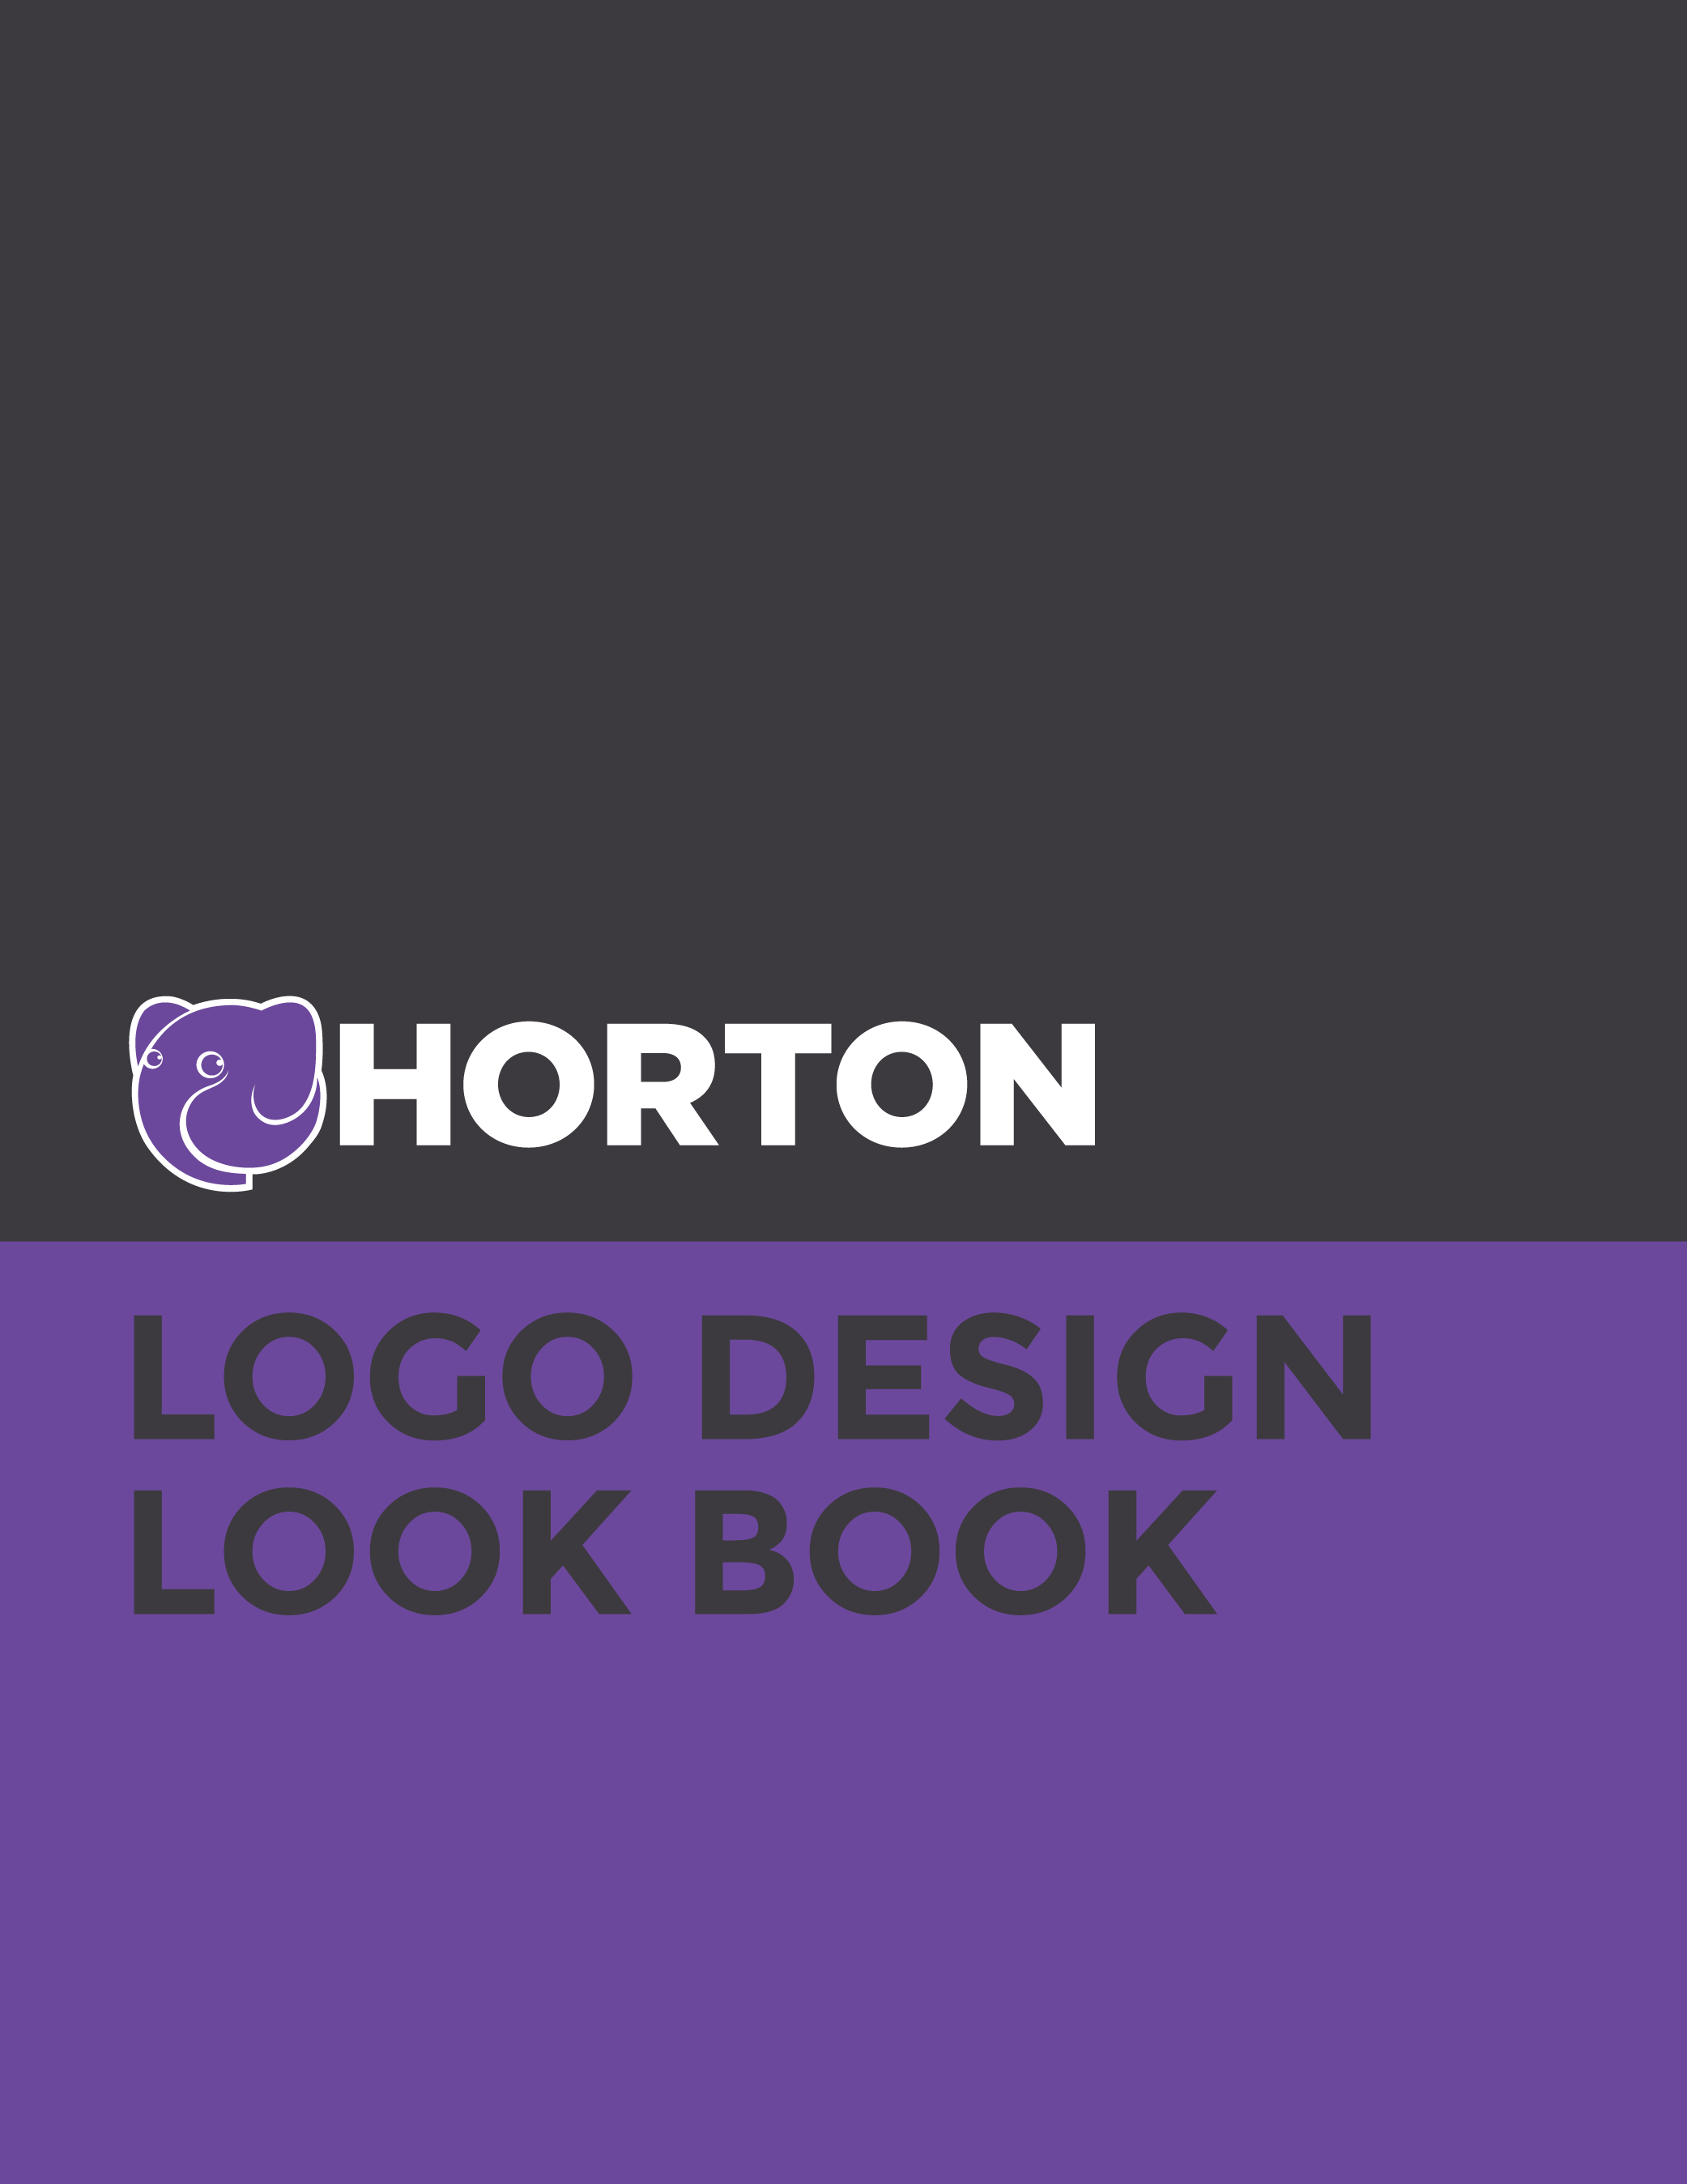 HG-Look-Book-Cover.png